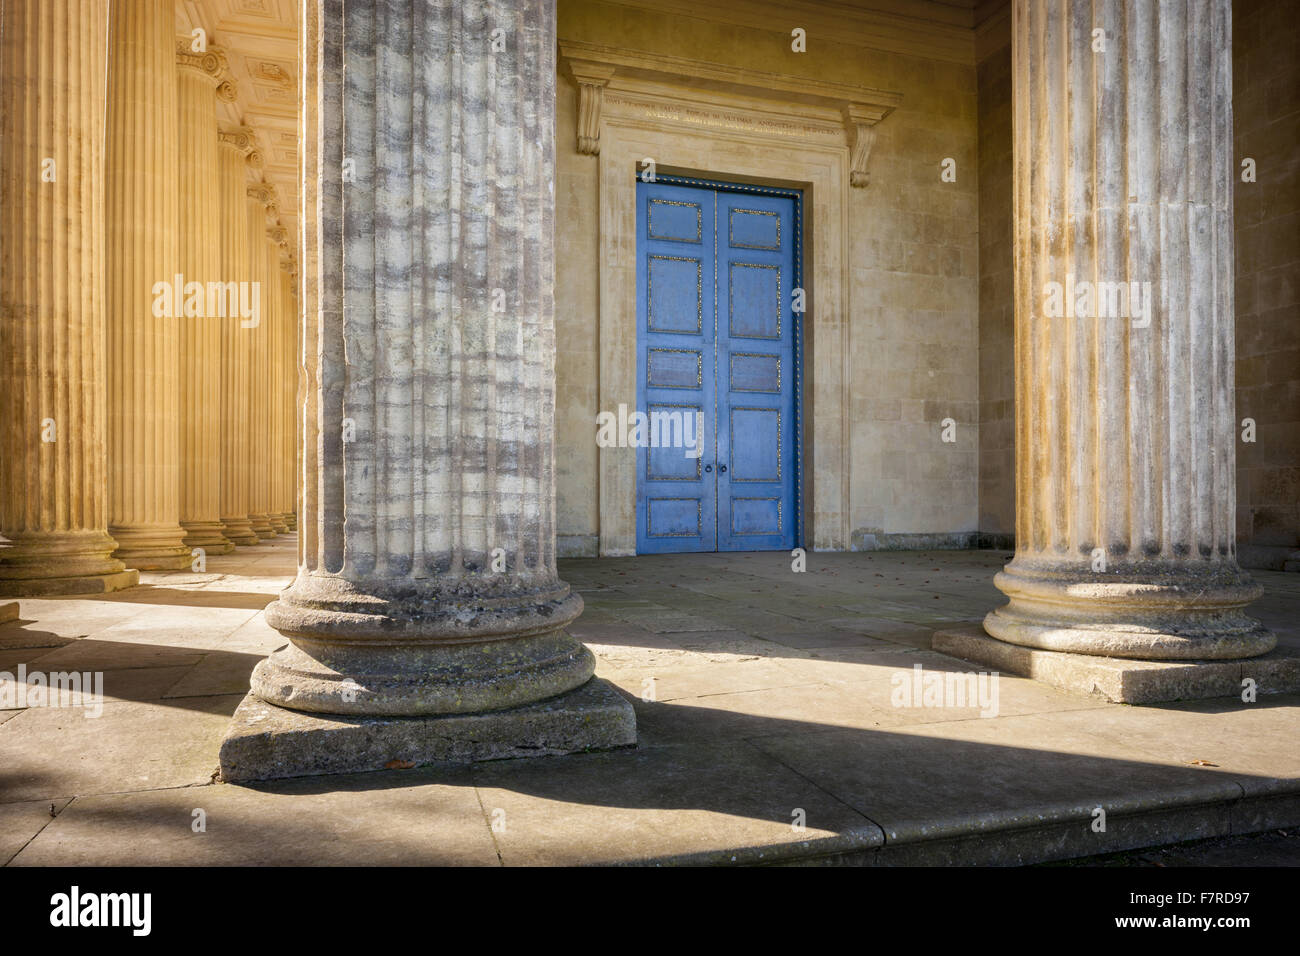 Detail of the Temple of Concord and Victory at Stowe, Buckinghamshire. Stowe is an 18th century landscaped garden, - Stock Image